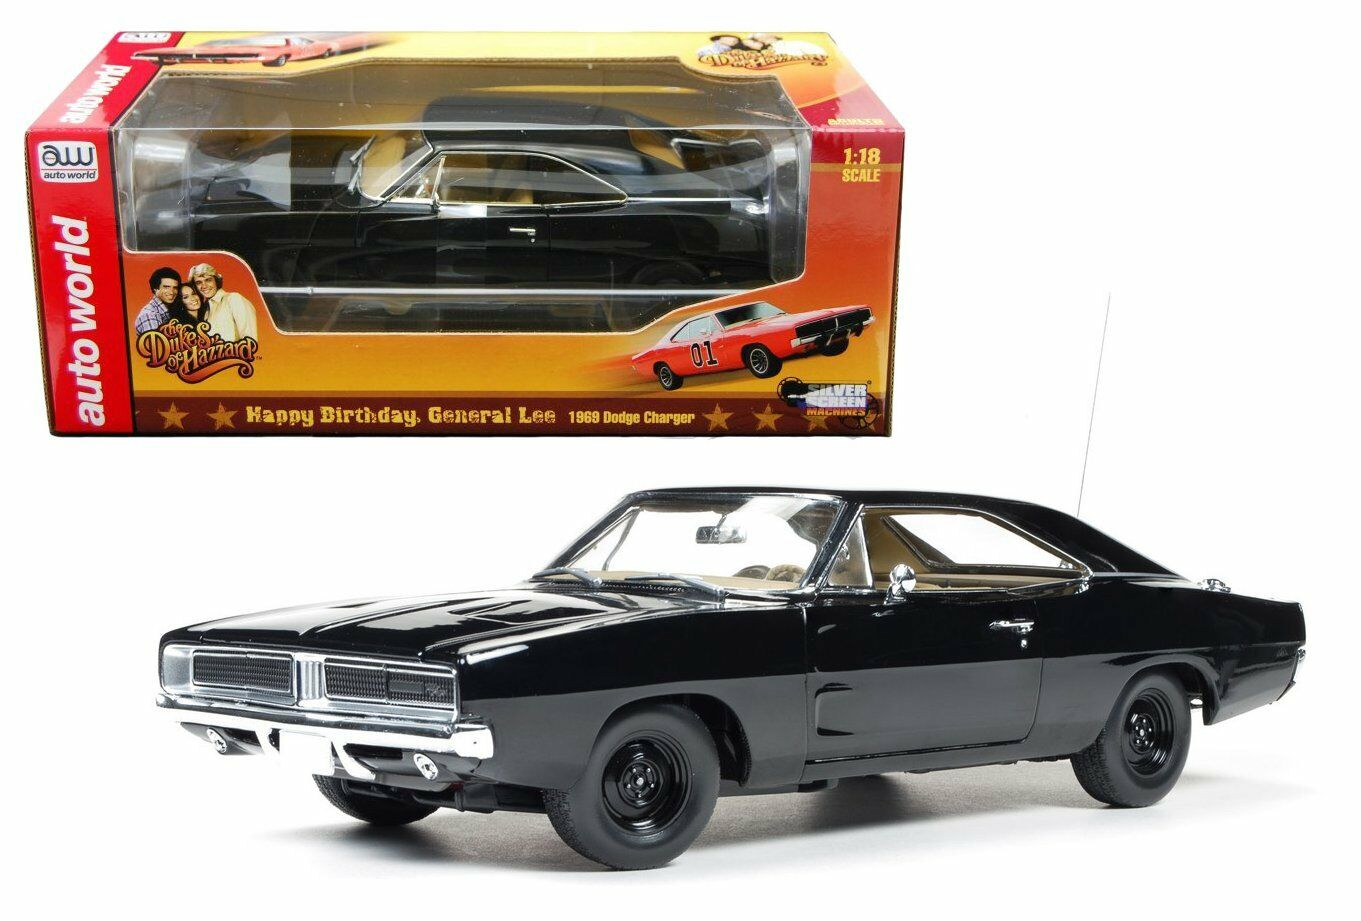 AUTO WORLD 1:18 1969 DODGE CHARGER GENERAL LEE